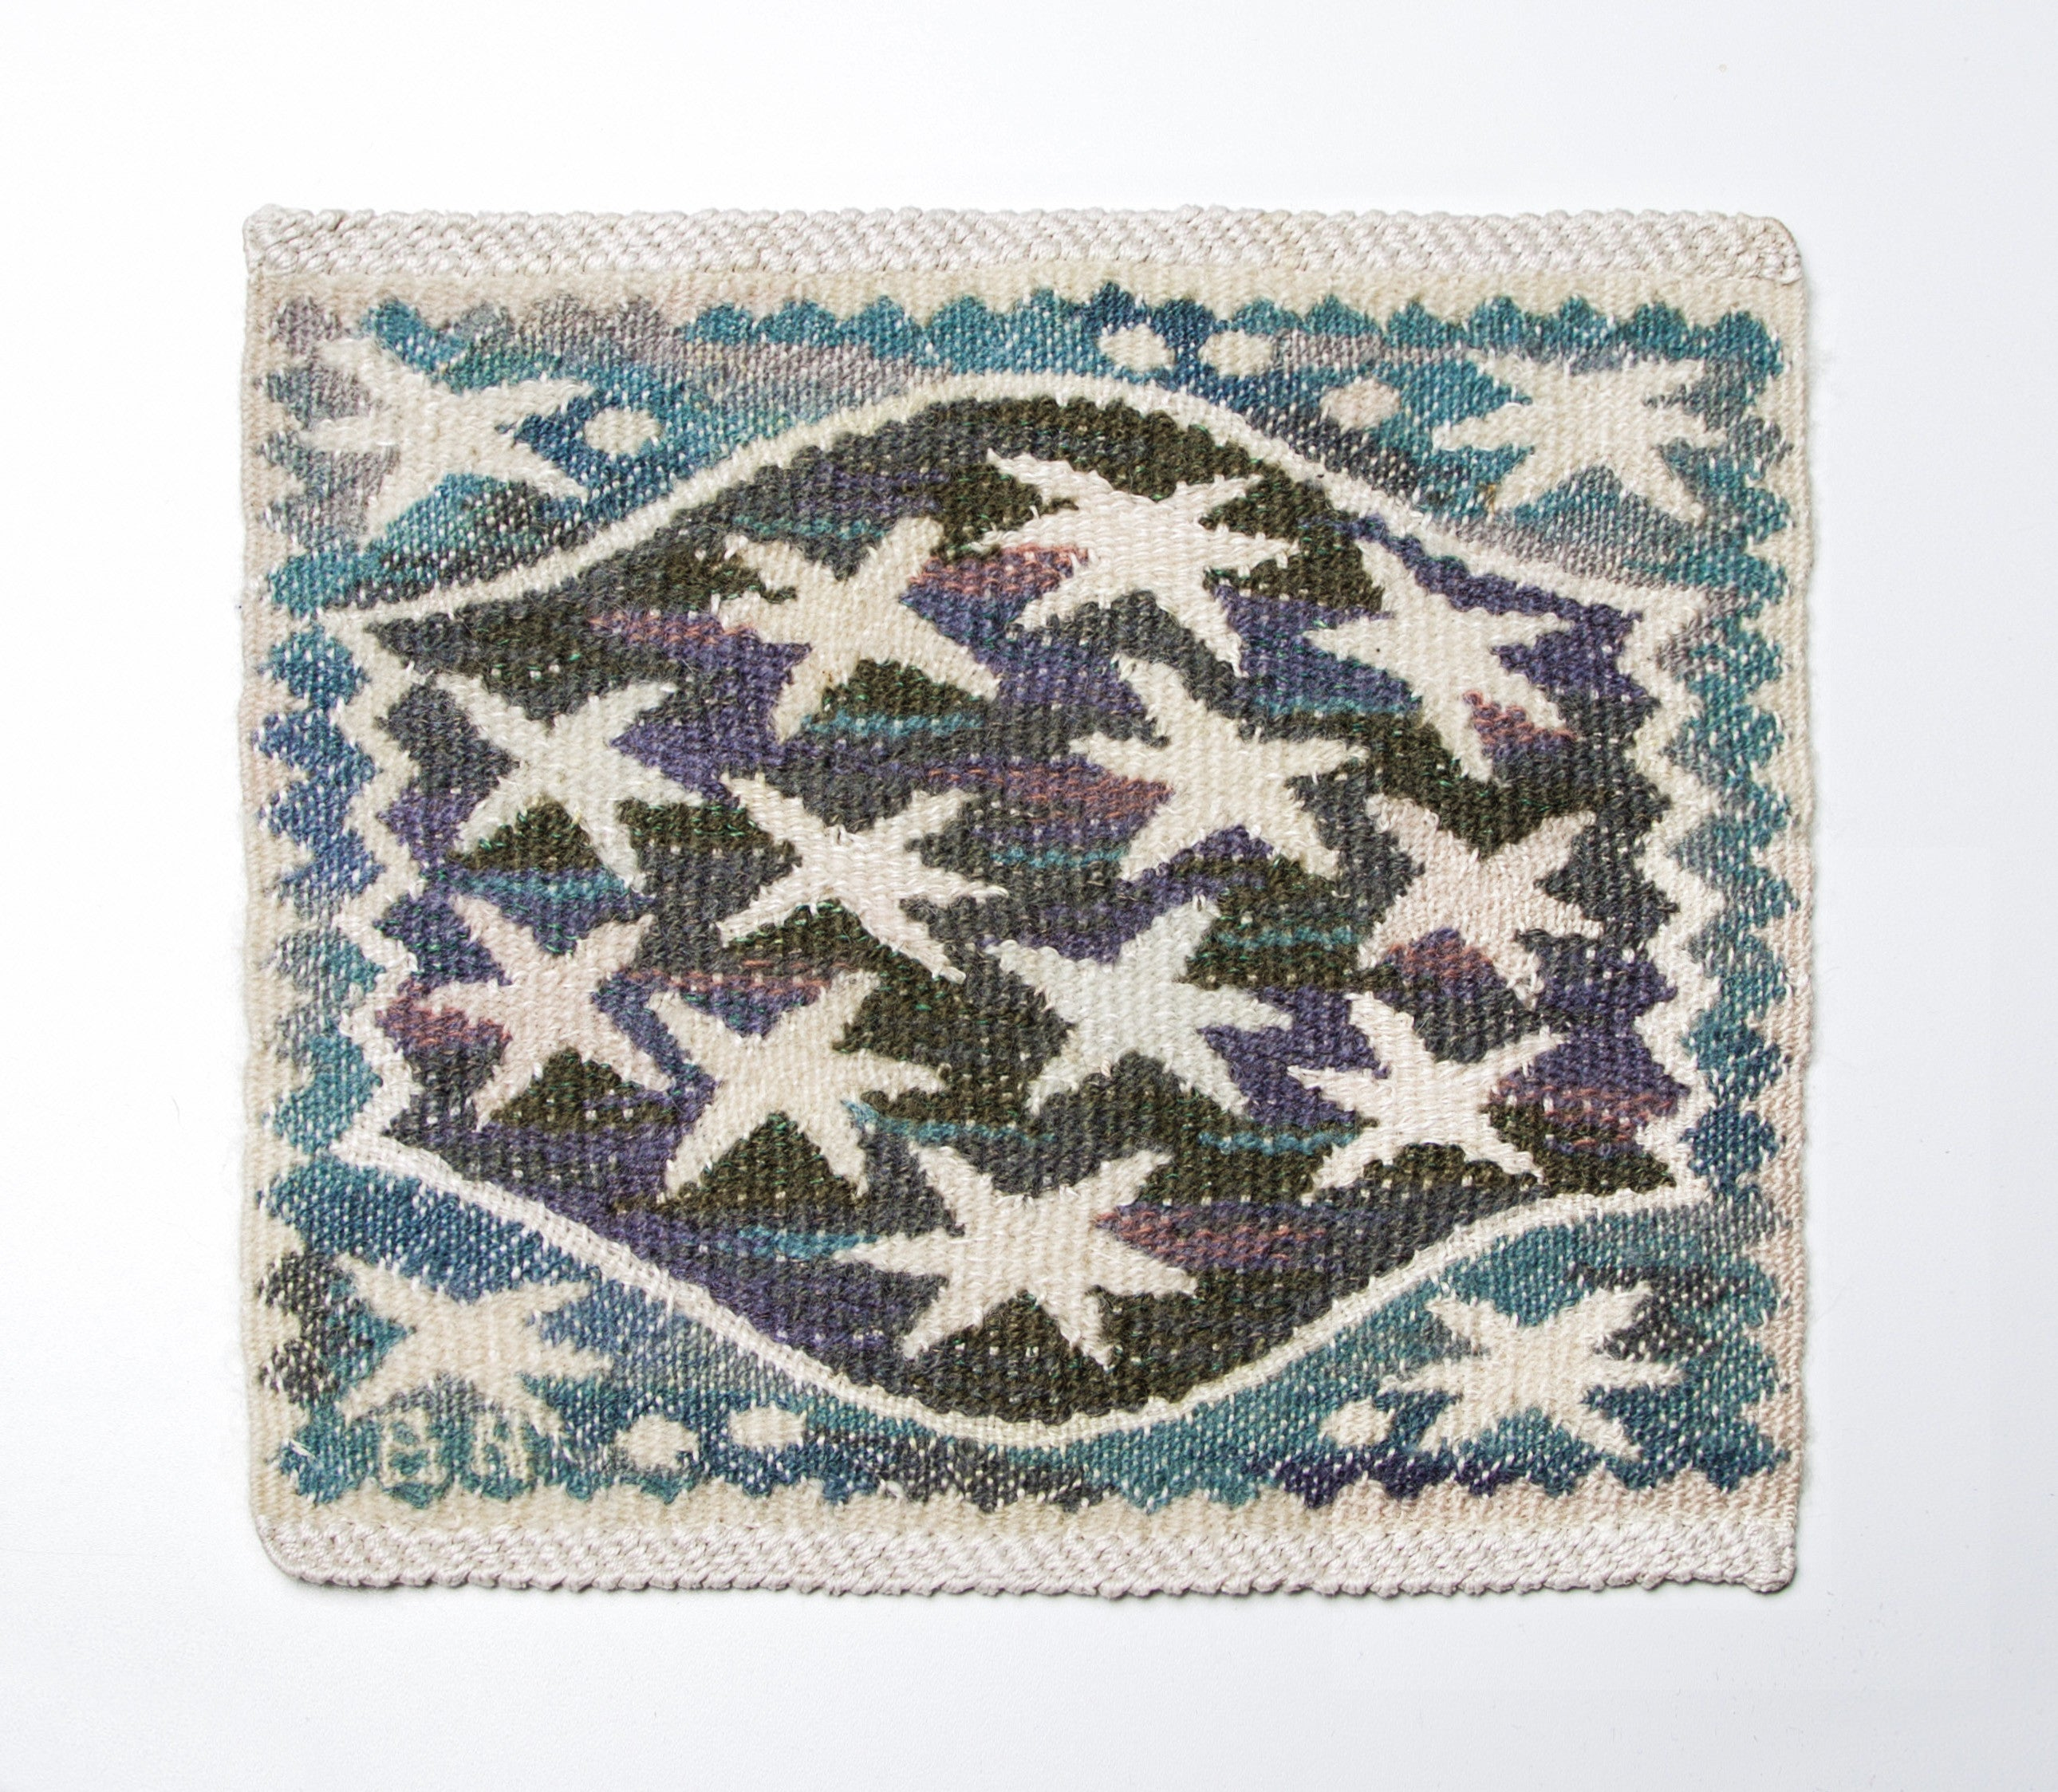 Barbro Nilsson, Ramslök Tapestry Cloth, 1943, AB MMF, Sweden - The Exchange Int